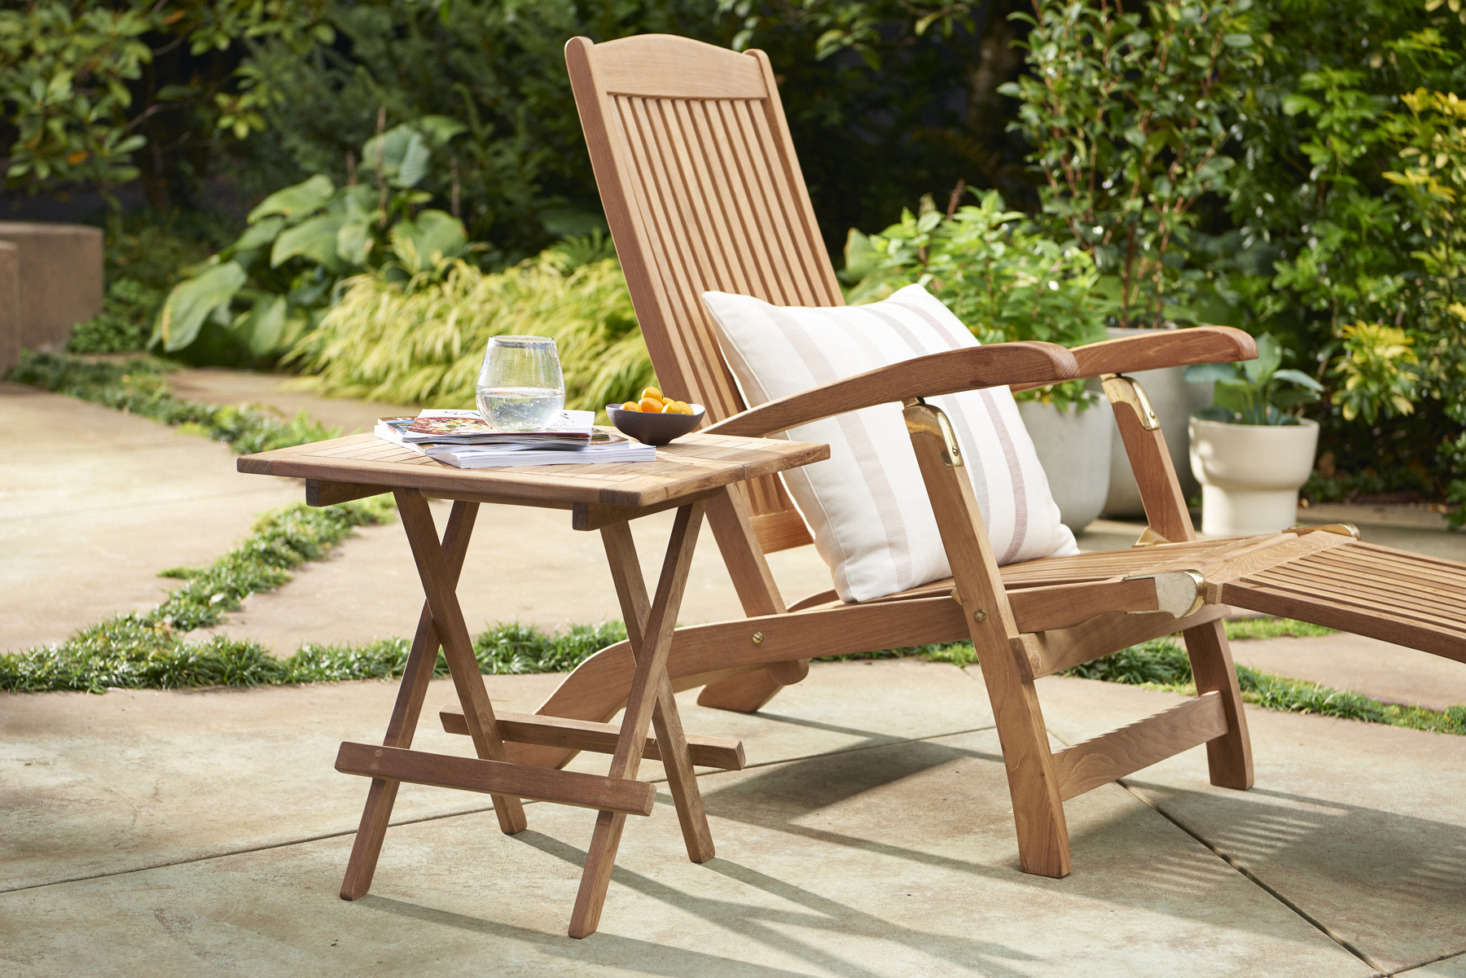 Even tiny outdoor spaces can turn into mini oases with a single Teak & Brass Folding Lounge Chair ($src=